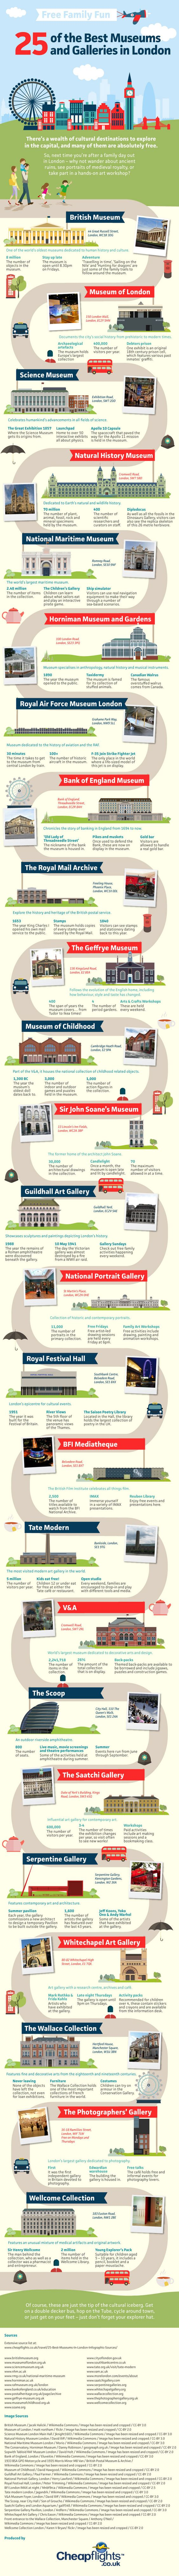 Travel tips: 25 Free Things to do in #London #infographic - http://www.earthsattractions.com/travel-tips-25-free-things-london/ - I hope you'll find it interesting and useful